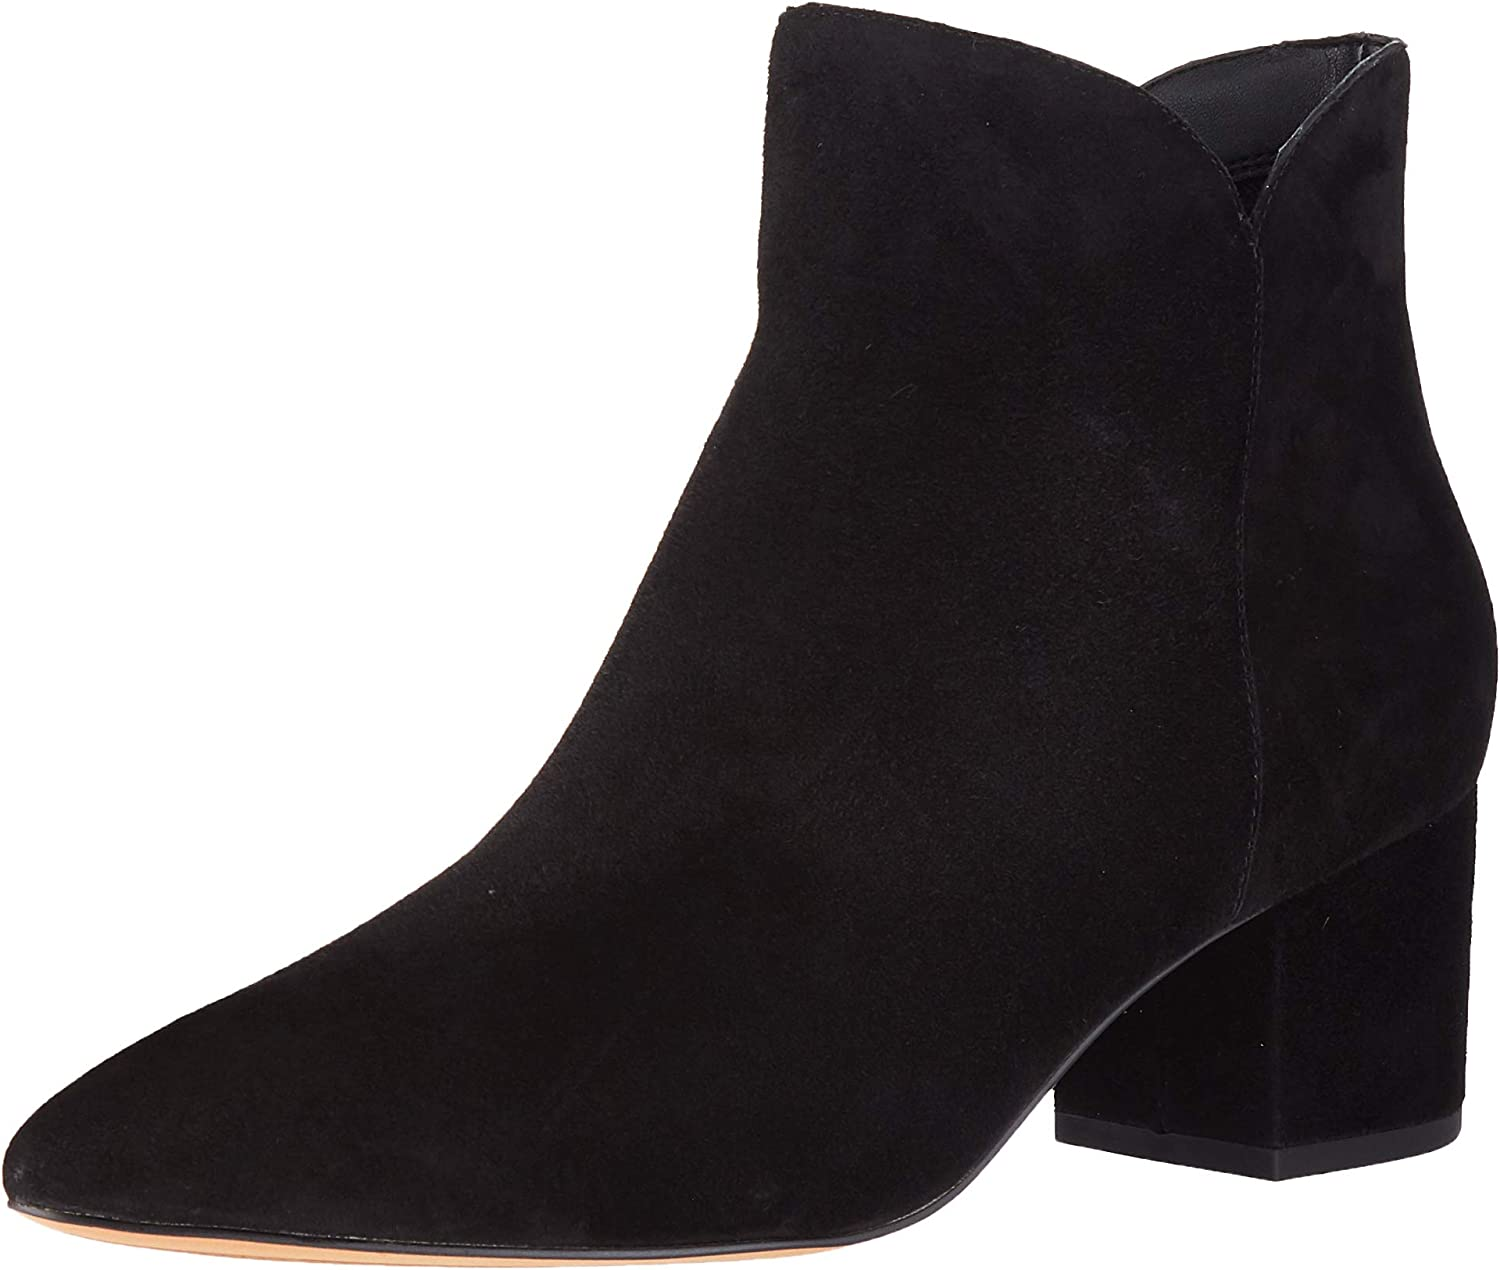 Elyse Bootie (60mm) Ankle Boot